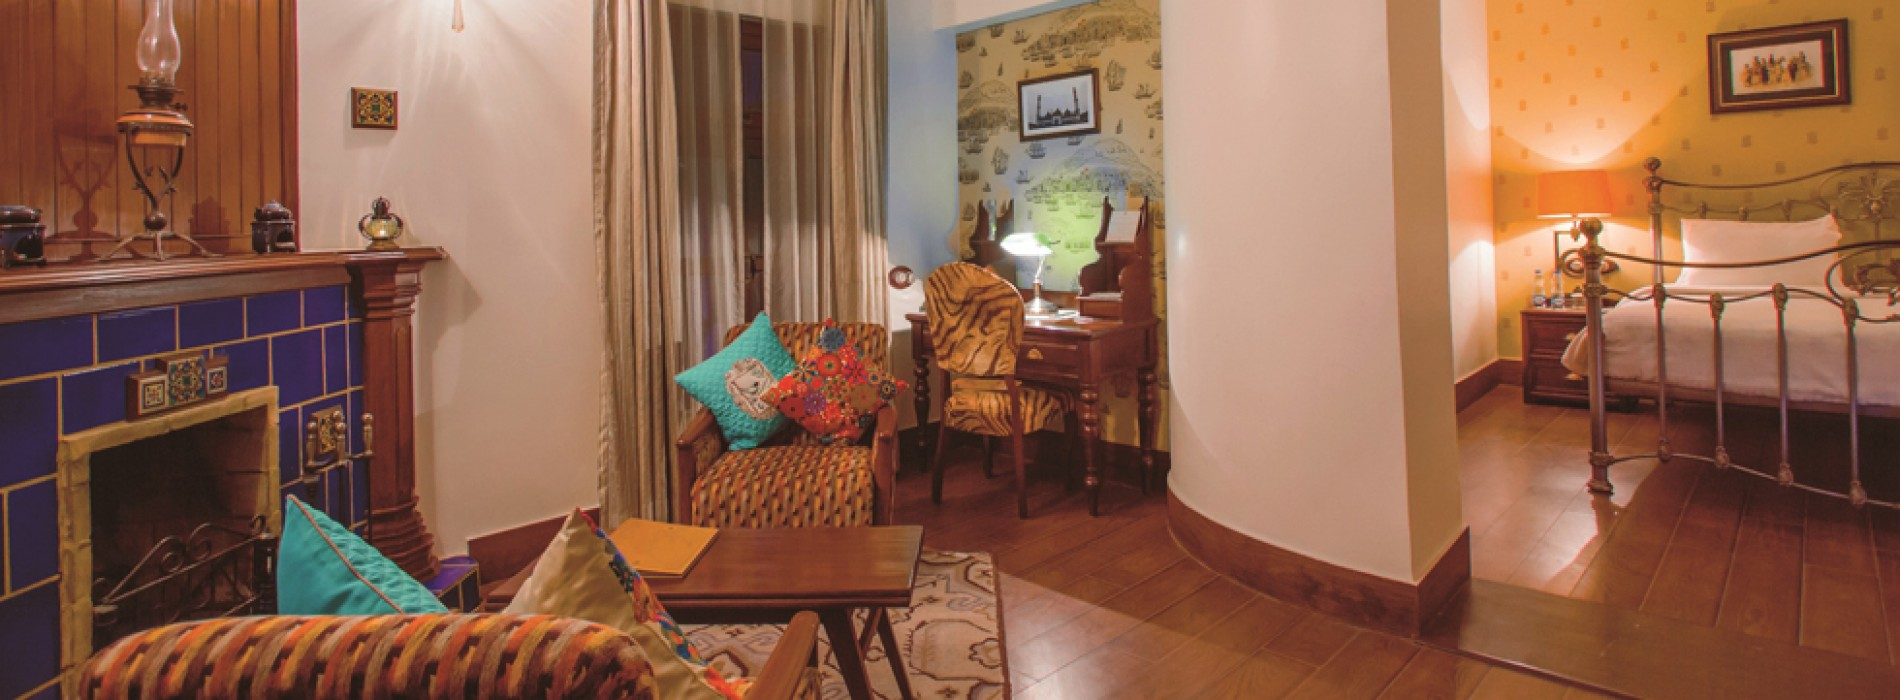 TUTC's new property in Dudhwa welcomes guests to Luxury Lodge Experience